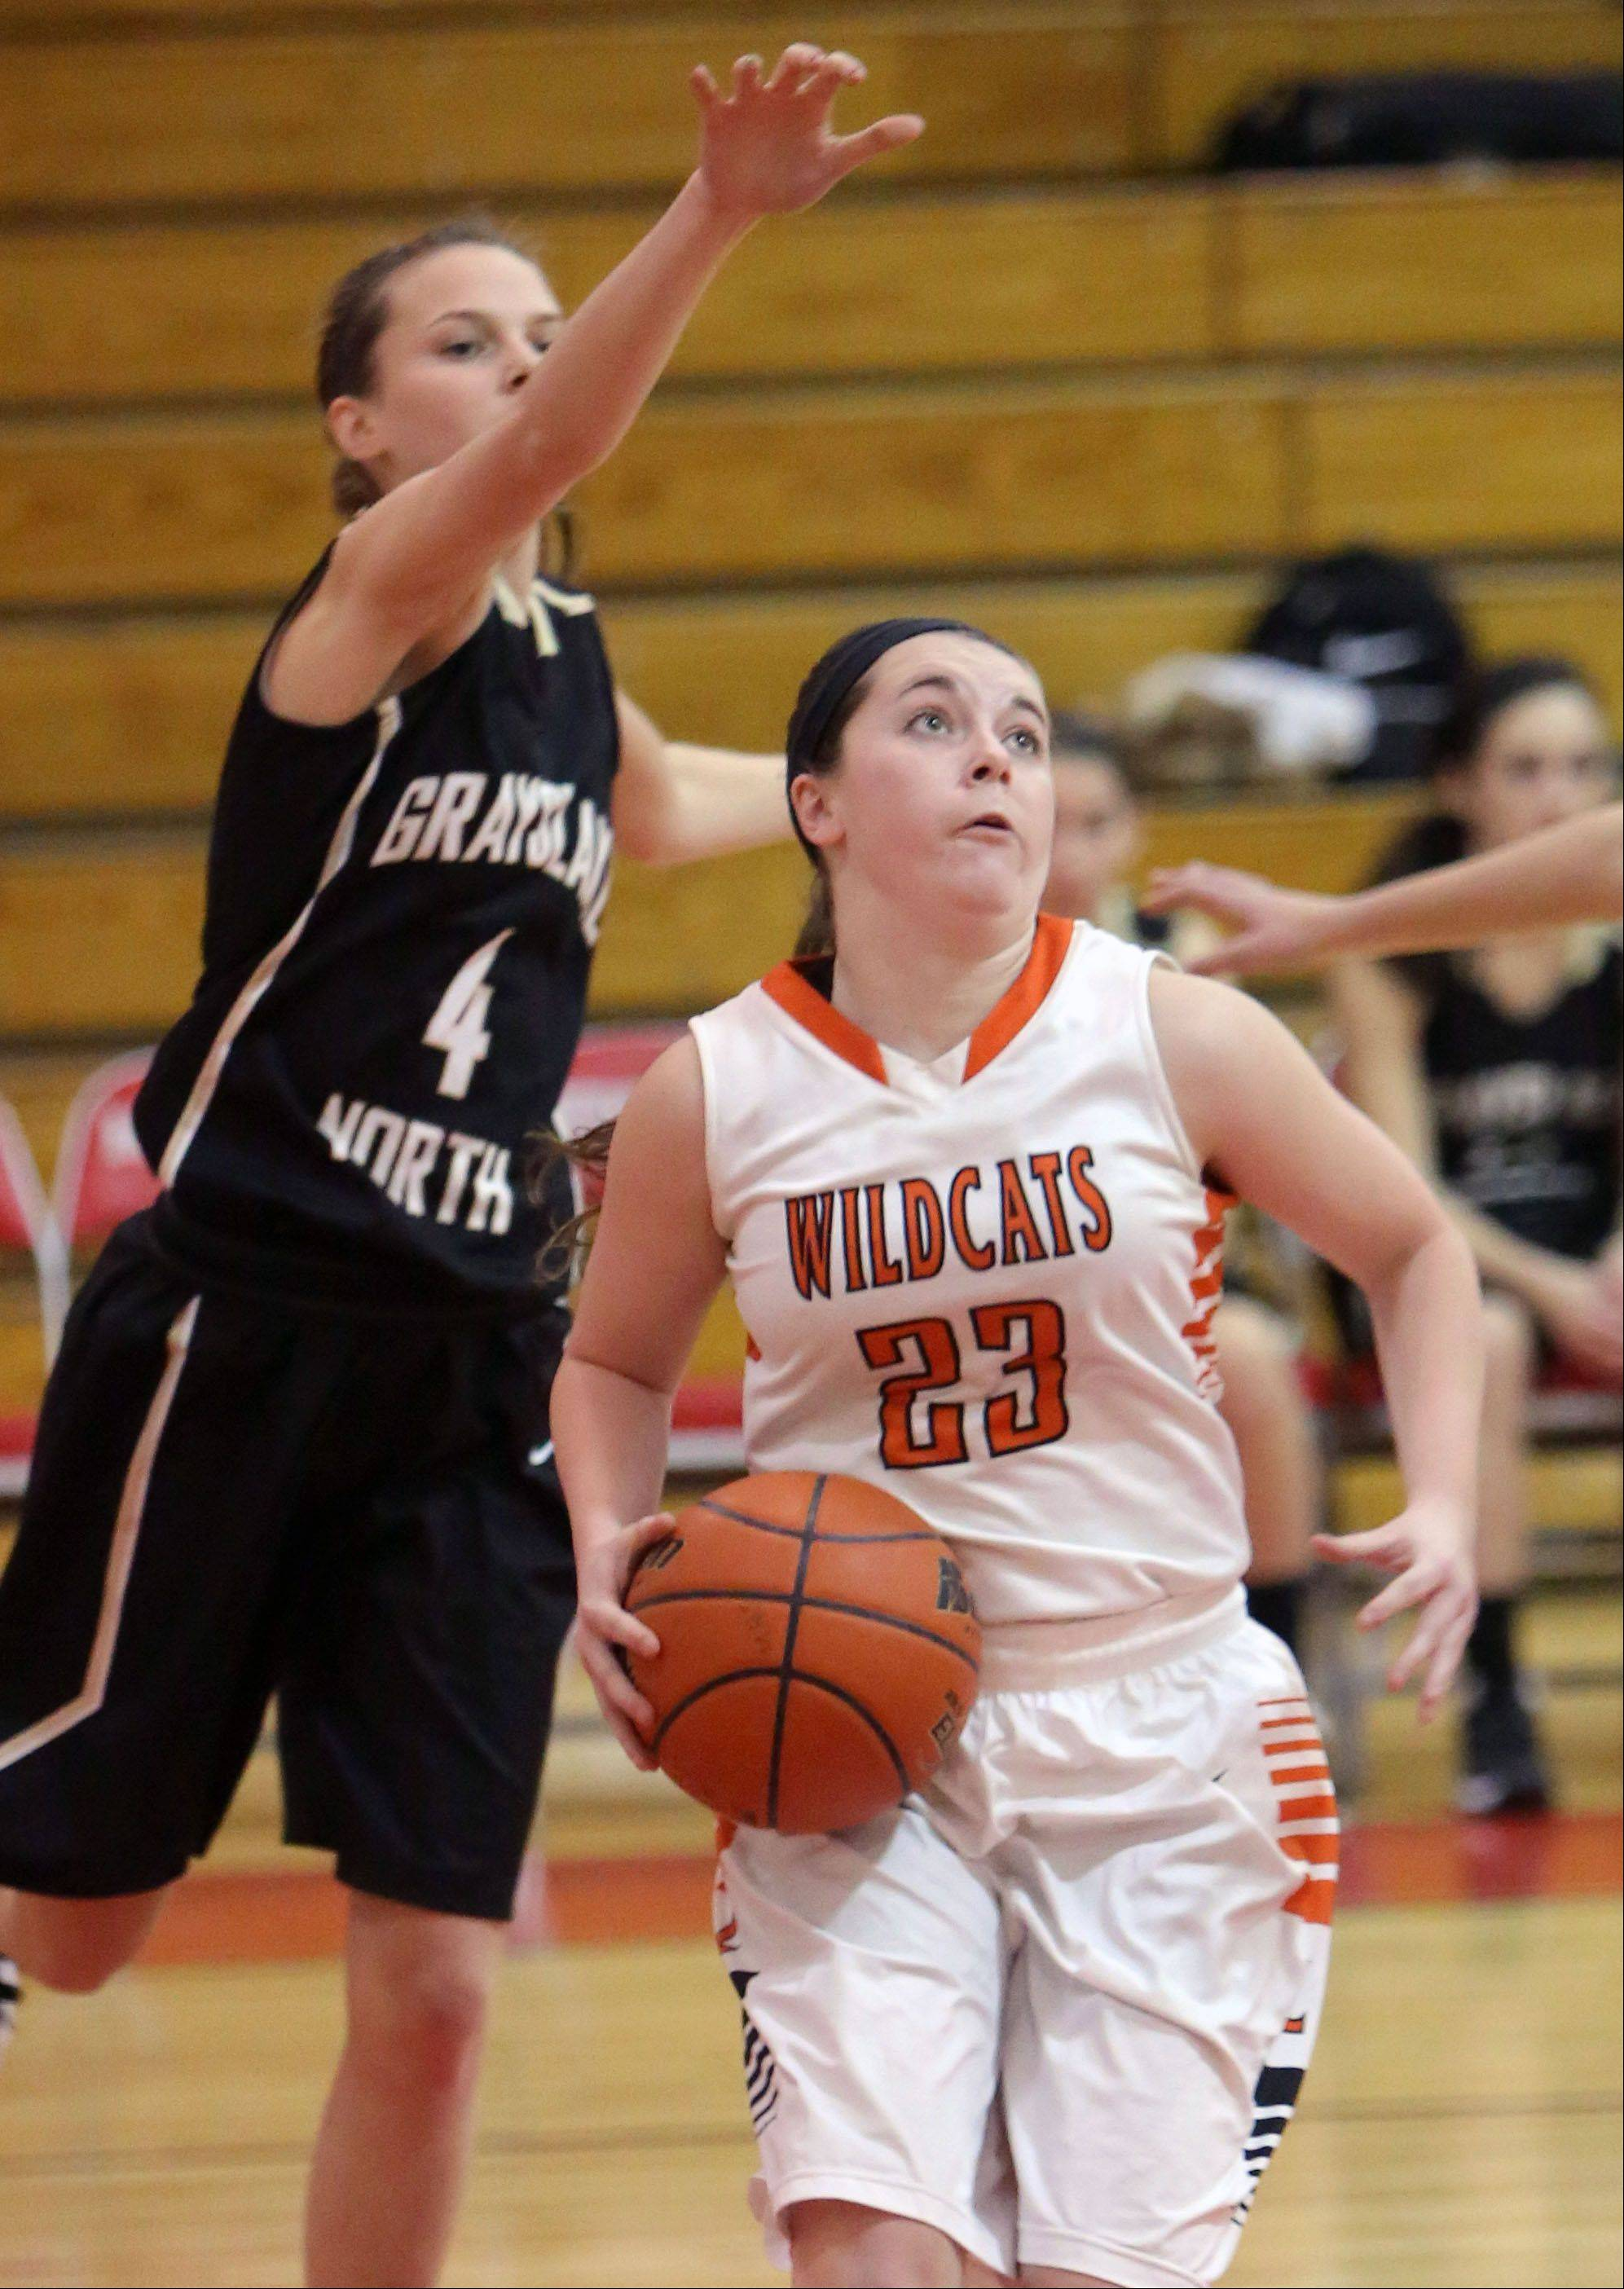 Libertyville's Sydney Mudd, right, drives on Grayslake North's Maggie Fish on Thursday at Mundelein.